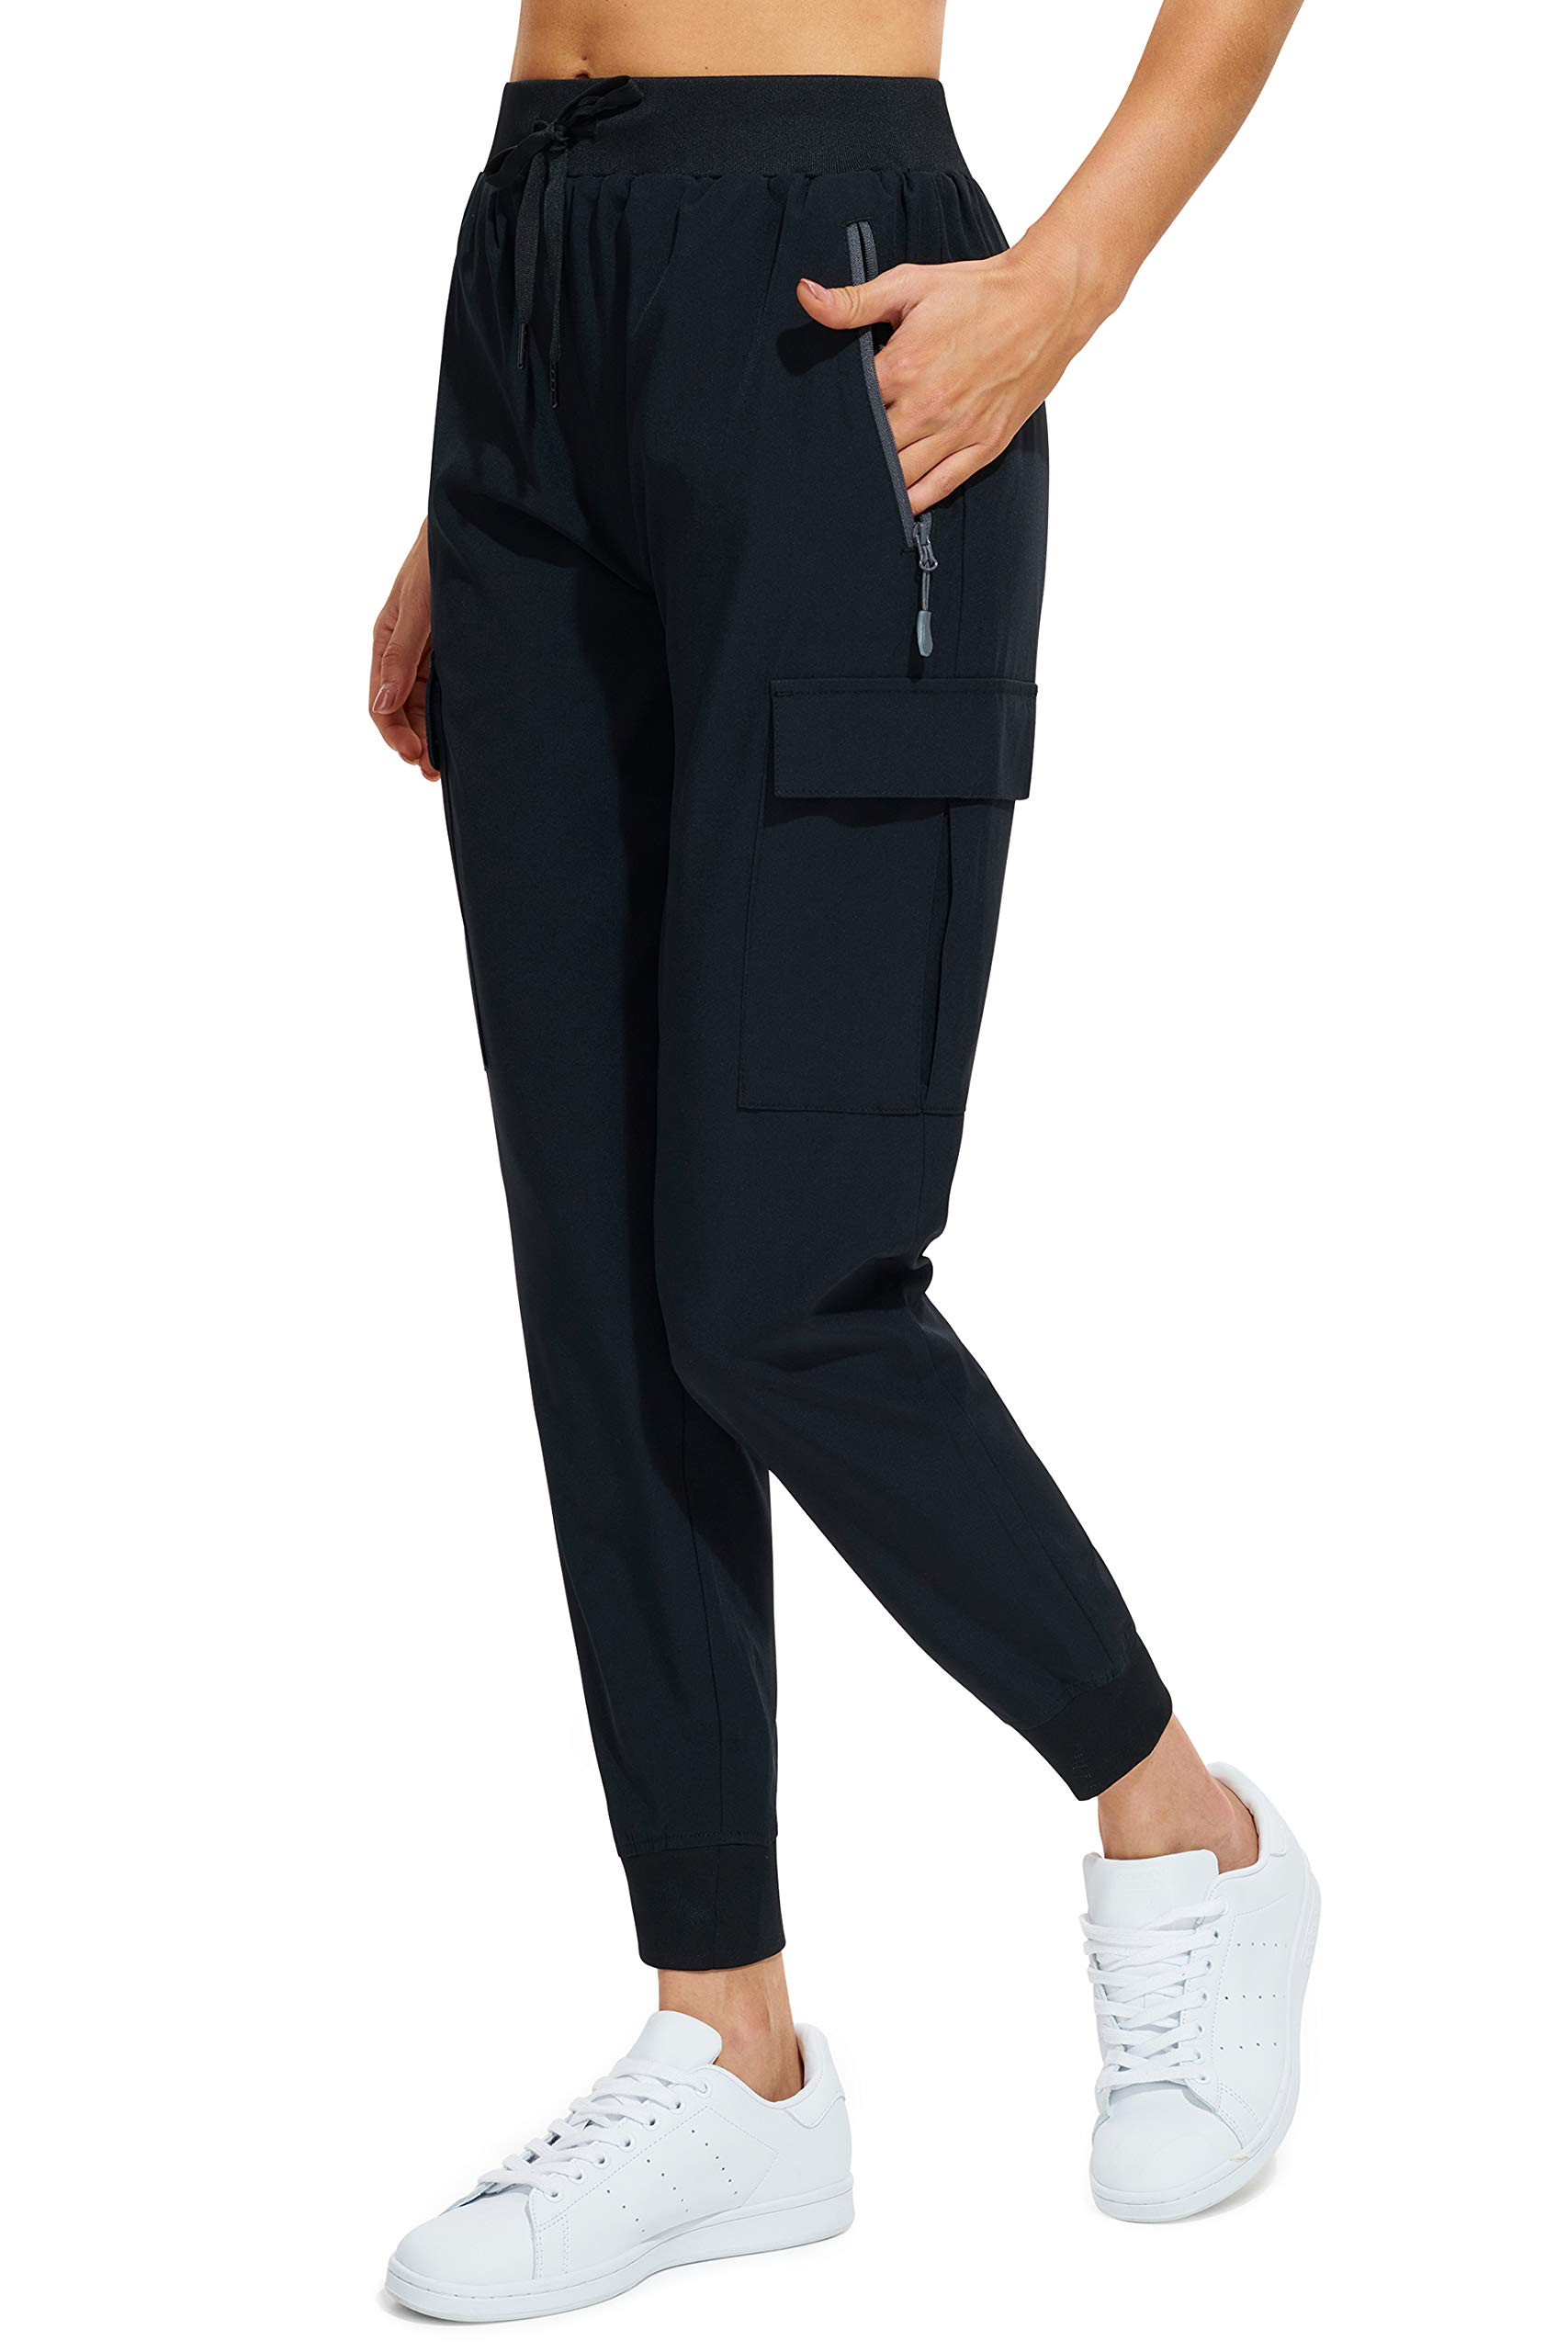 MASKERT Women's Cargo Joggers Quick Dry Lightweight Hiking Pants with Pockets for Lounge Workout Outdoor Athletic